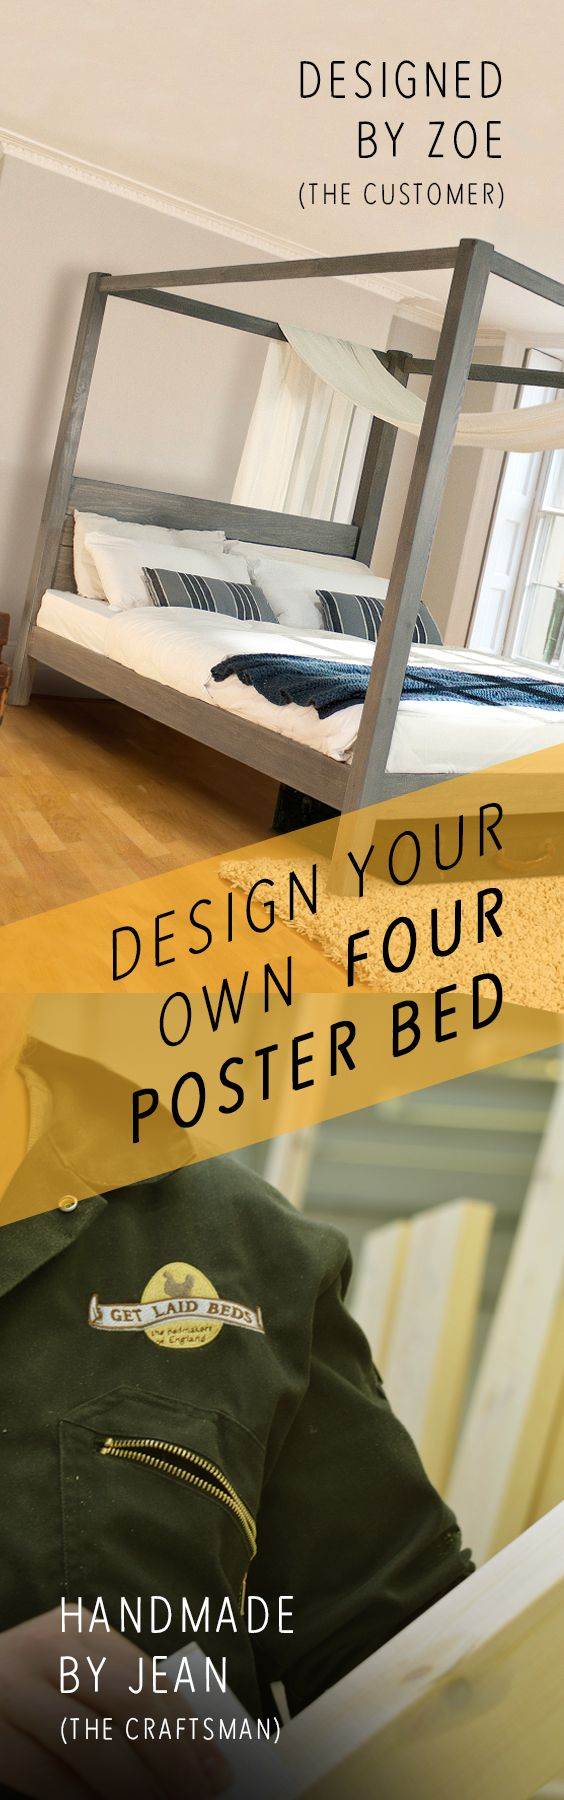 Design your own 4 Poster Canopy Bed Frame at Get Laid Beds. Get creative with a 'made to order' service. Start with the style, choose your size and pick from over 16 finishes, including white, black, grey, oak and walnut.  Choose to go curved or square, plus many other bespoke options. All handmade in England with an 11 Year Guarantee.  www.getlaidbeds.co.uk